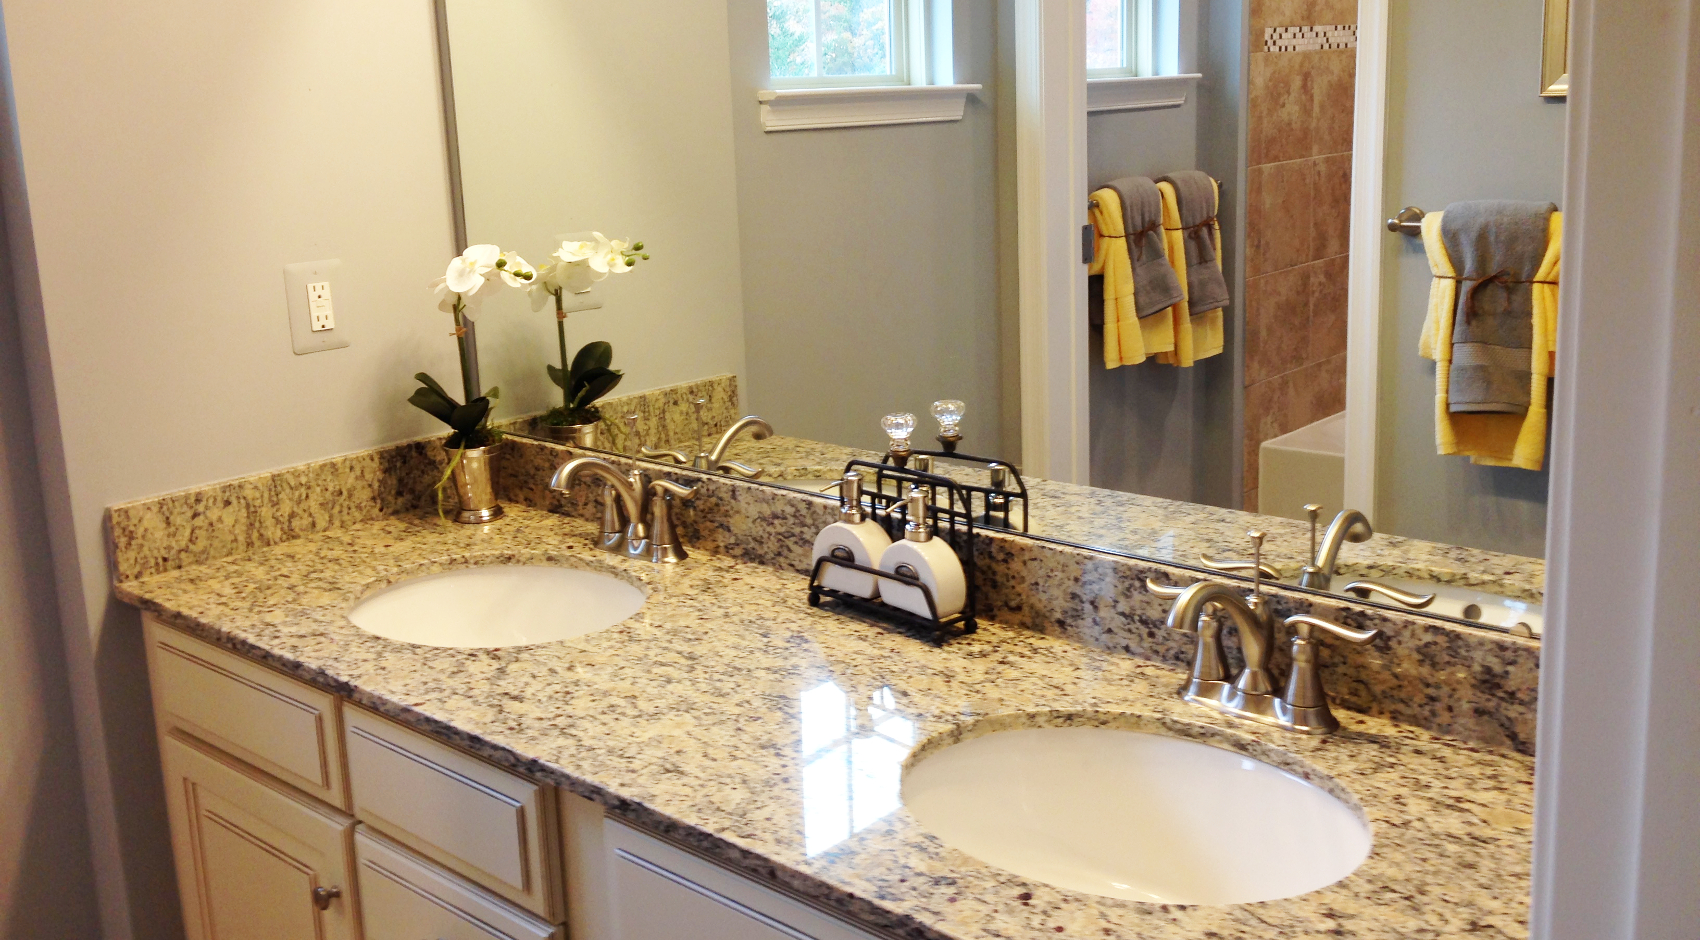 Electrician for bathroom remodel in MD